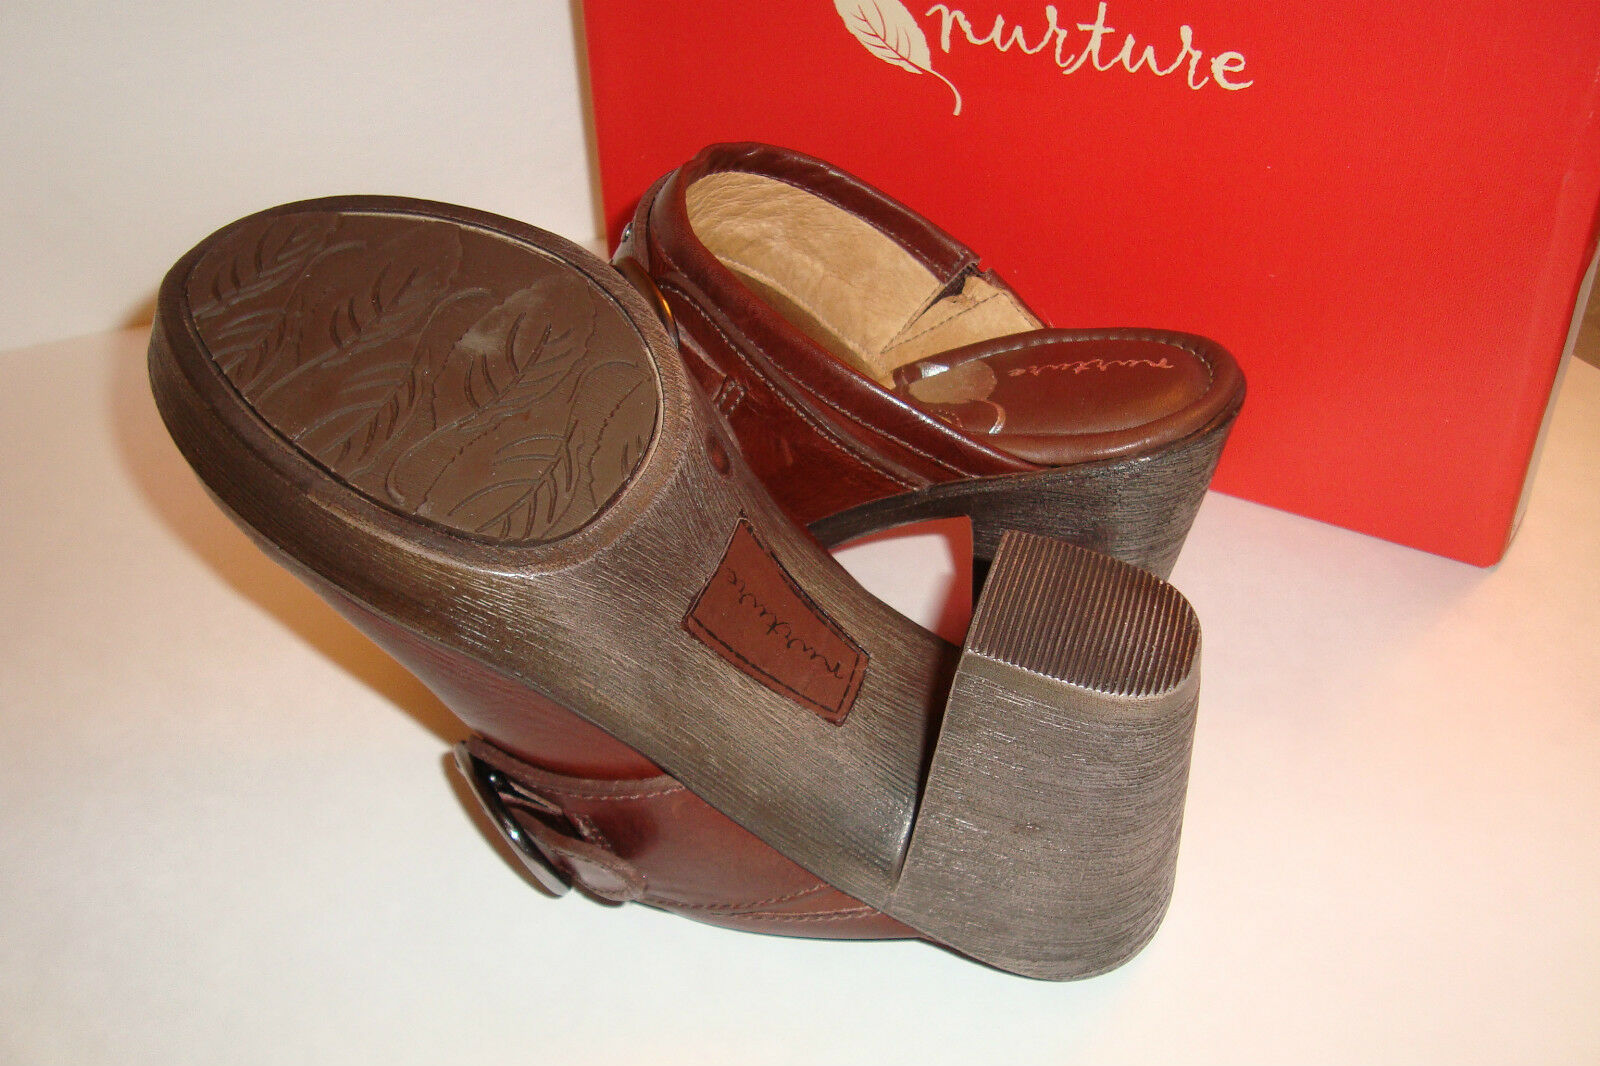 Nurture Donna NWB Prairie 211 Woodberry 6.5 Brown Clogs Shoes Size 6.5 Woodberry MED NEW 81d90f